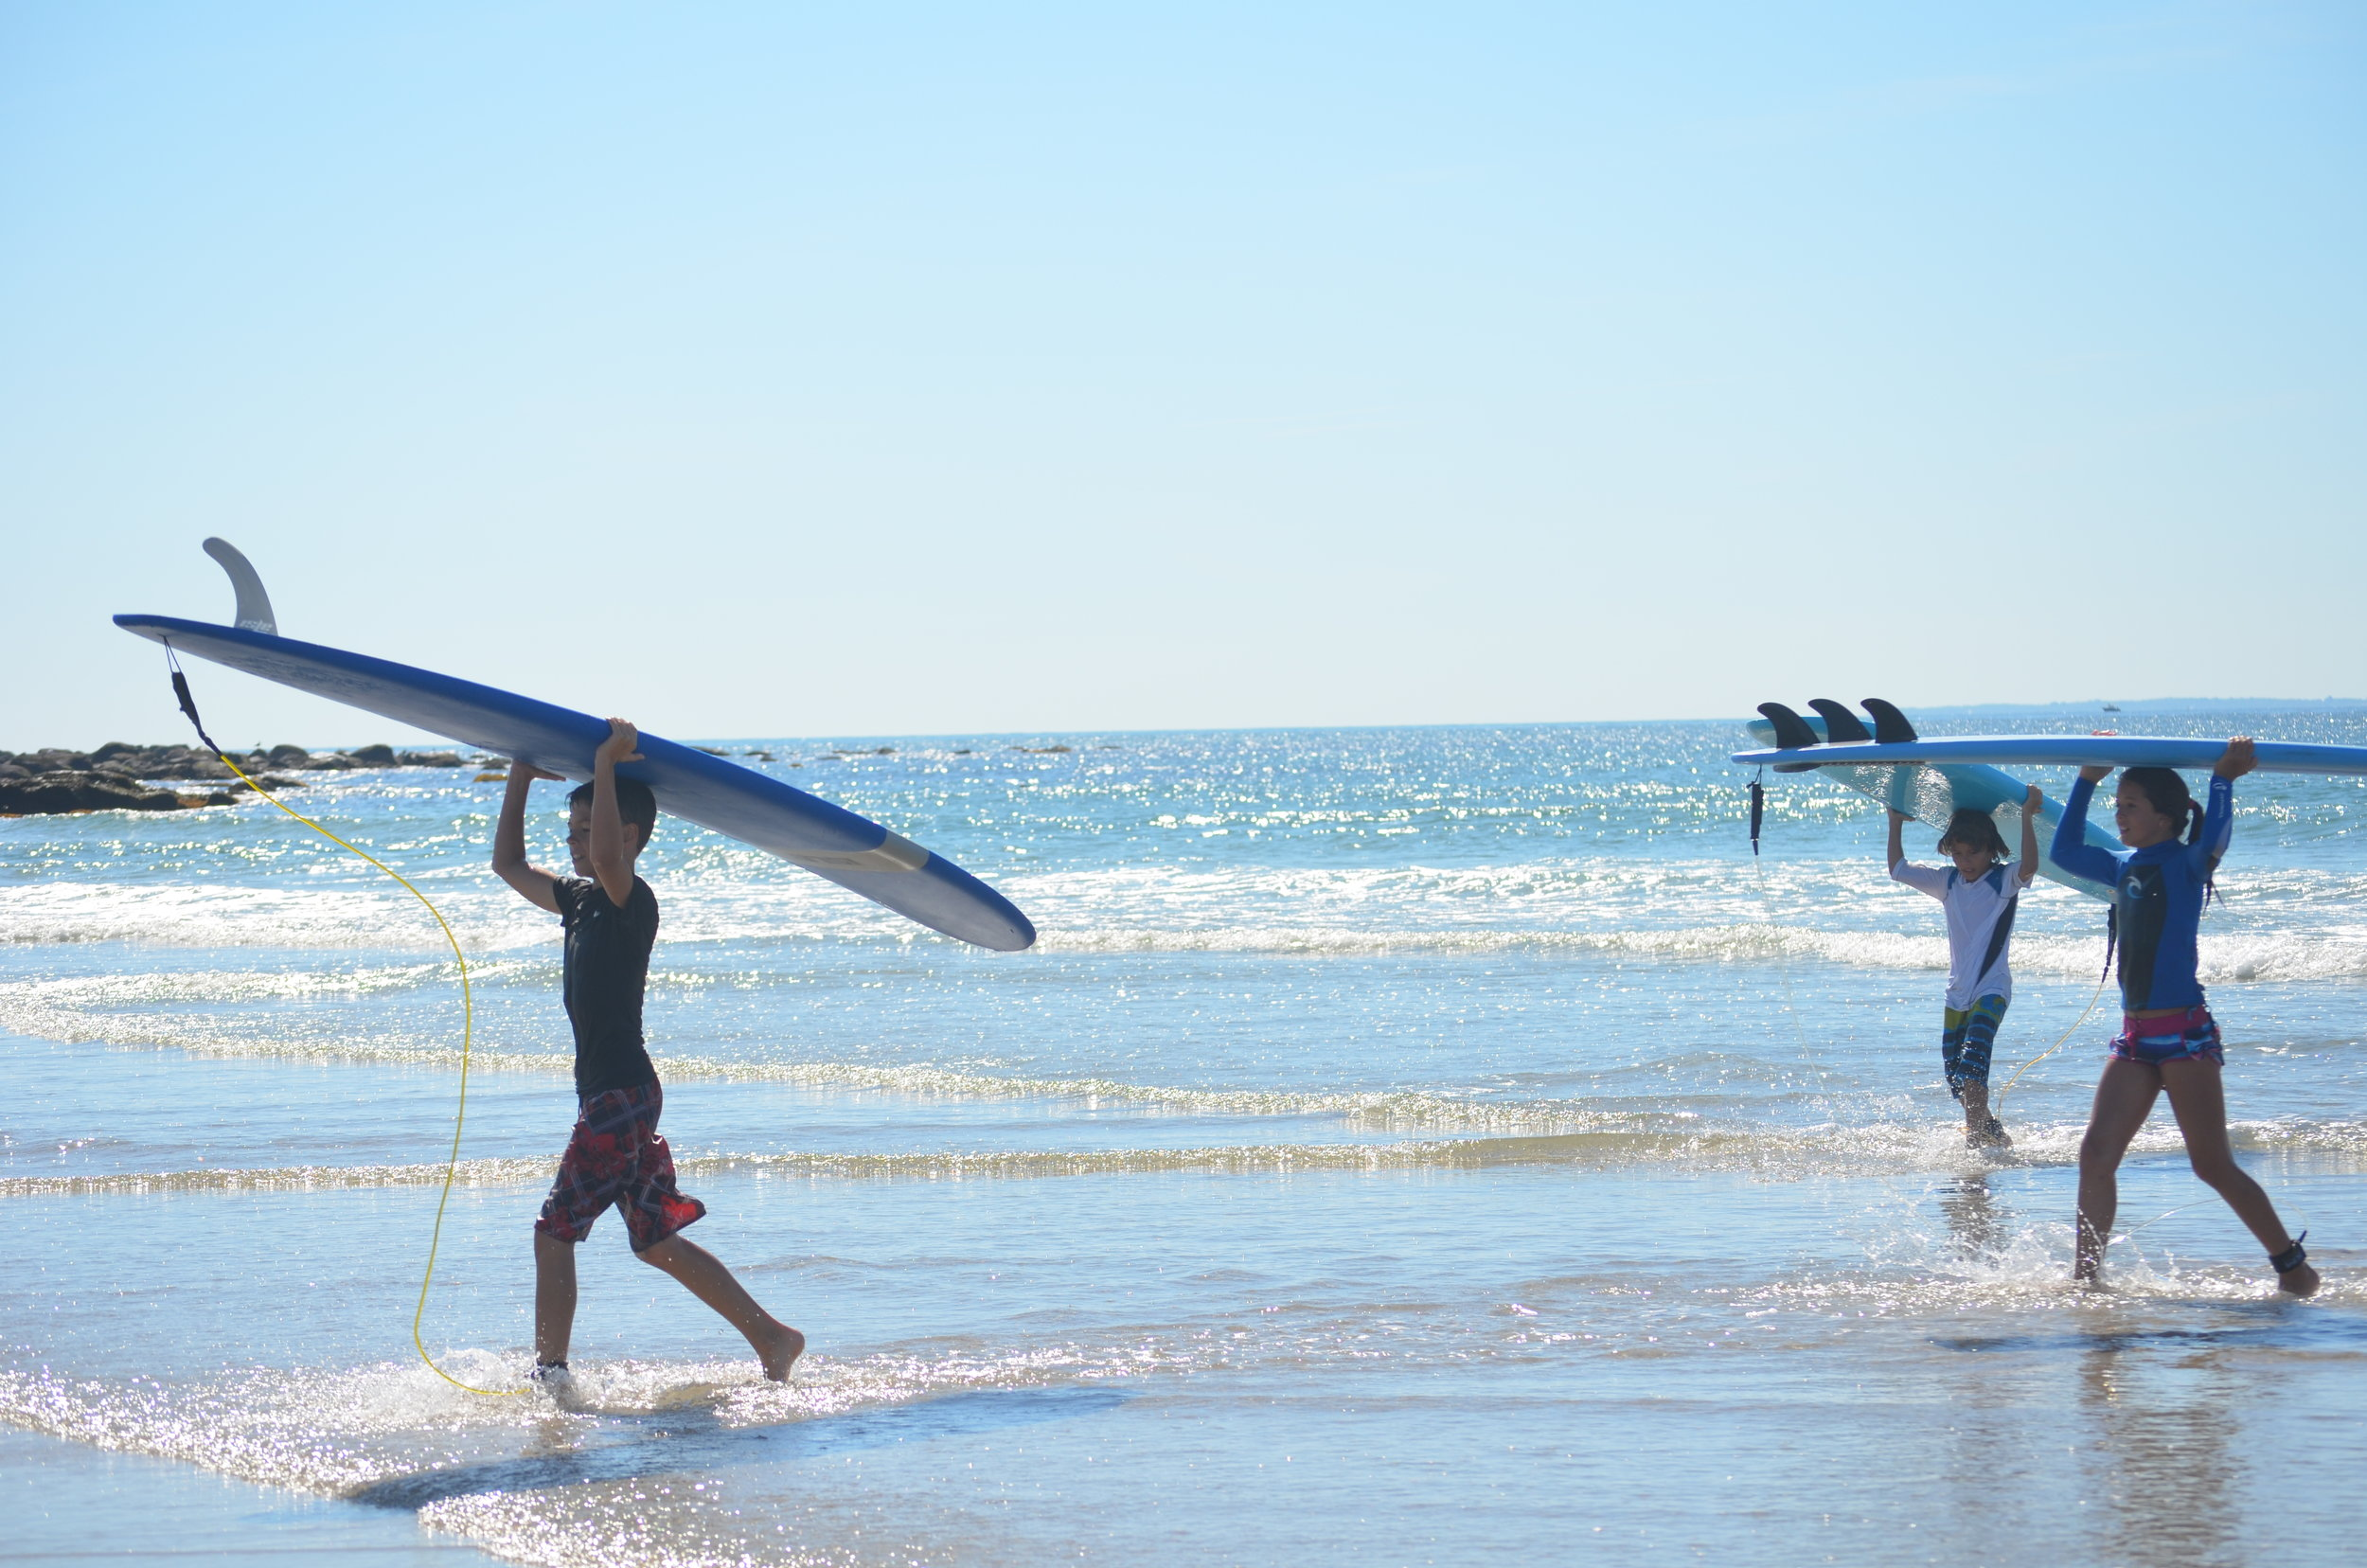 SURF RENTAL - Take a surfboard to the beach.